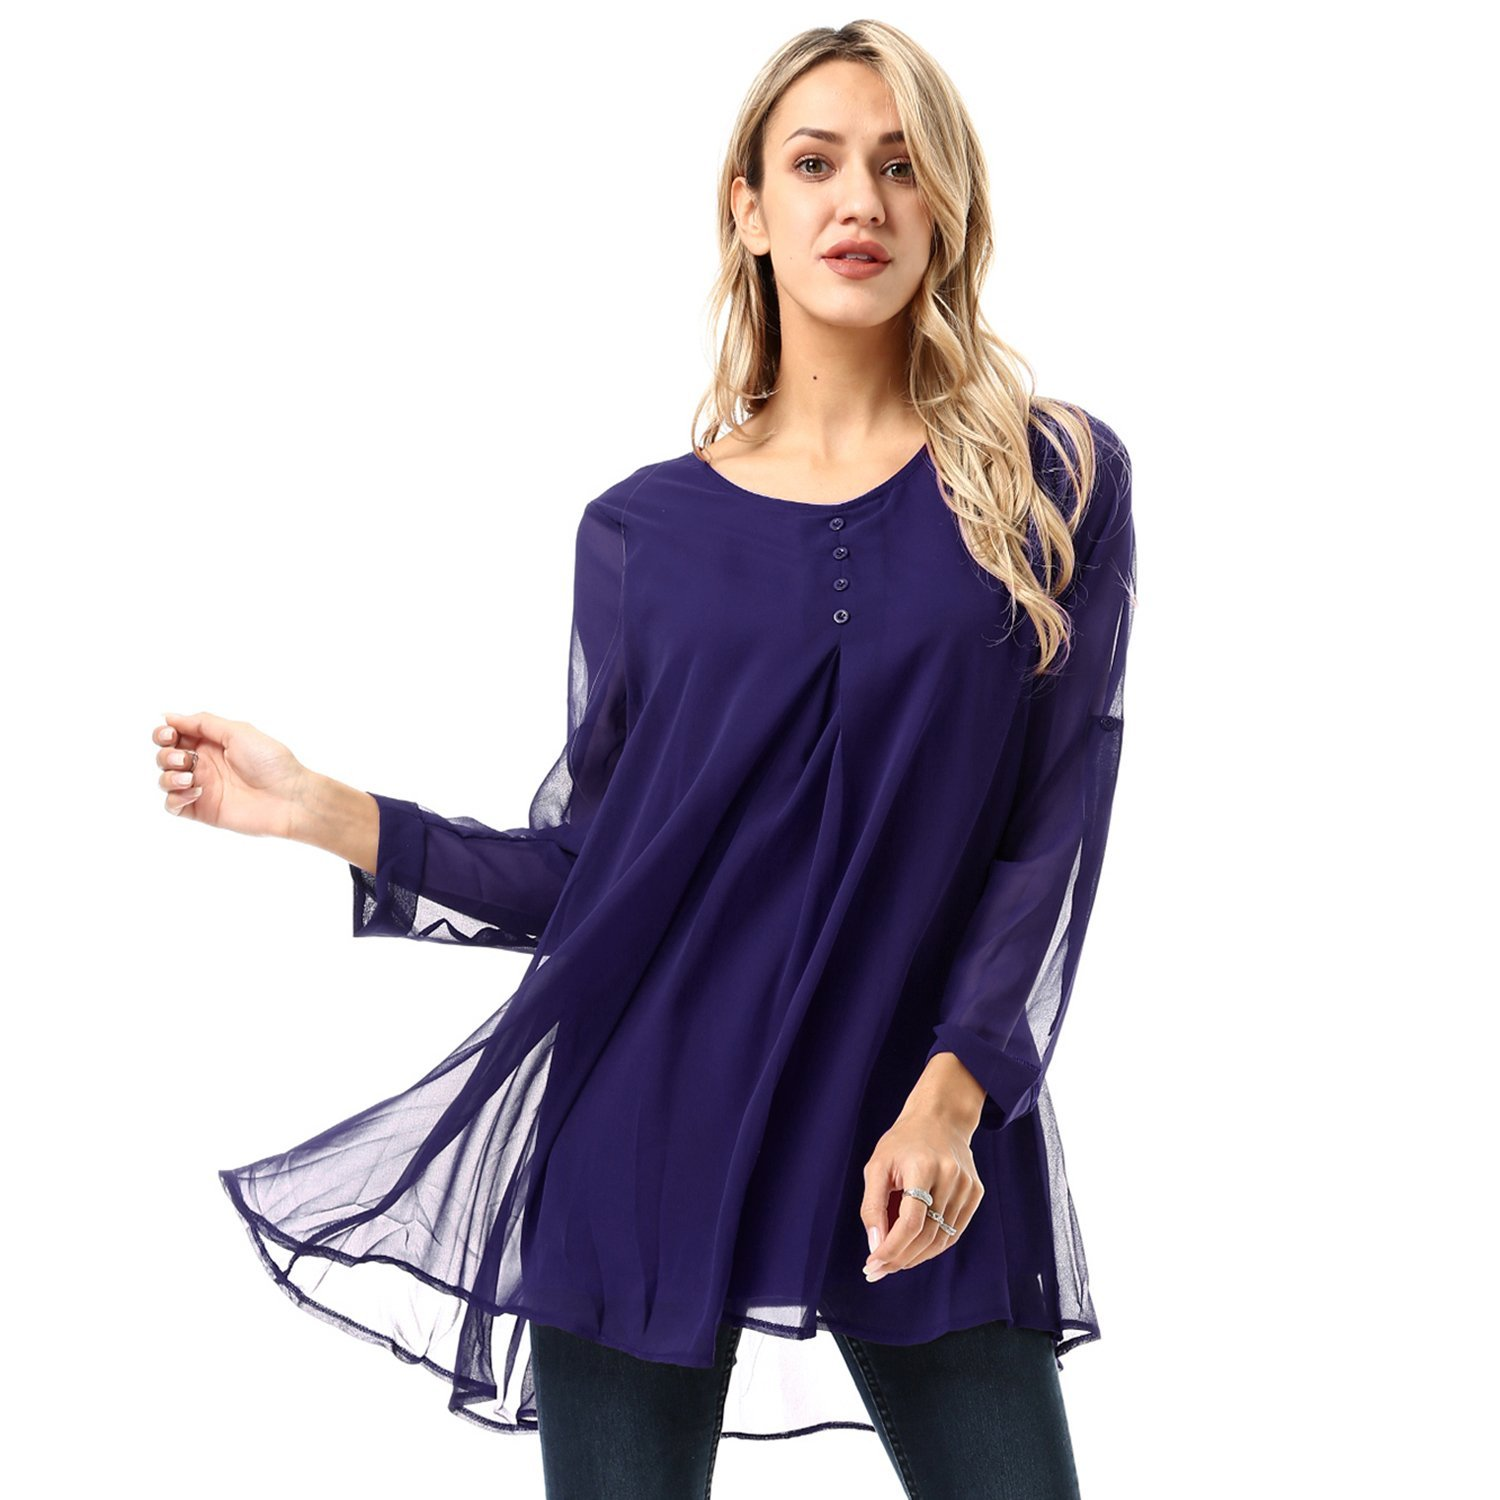 dd8511a6e11c5 Get Quotations · FISOUL Women s Blouse Roll-up Long Sleeve Round Neck  Layered Chiffon Flowy Blouse Top with